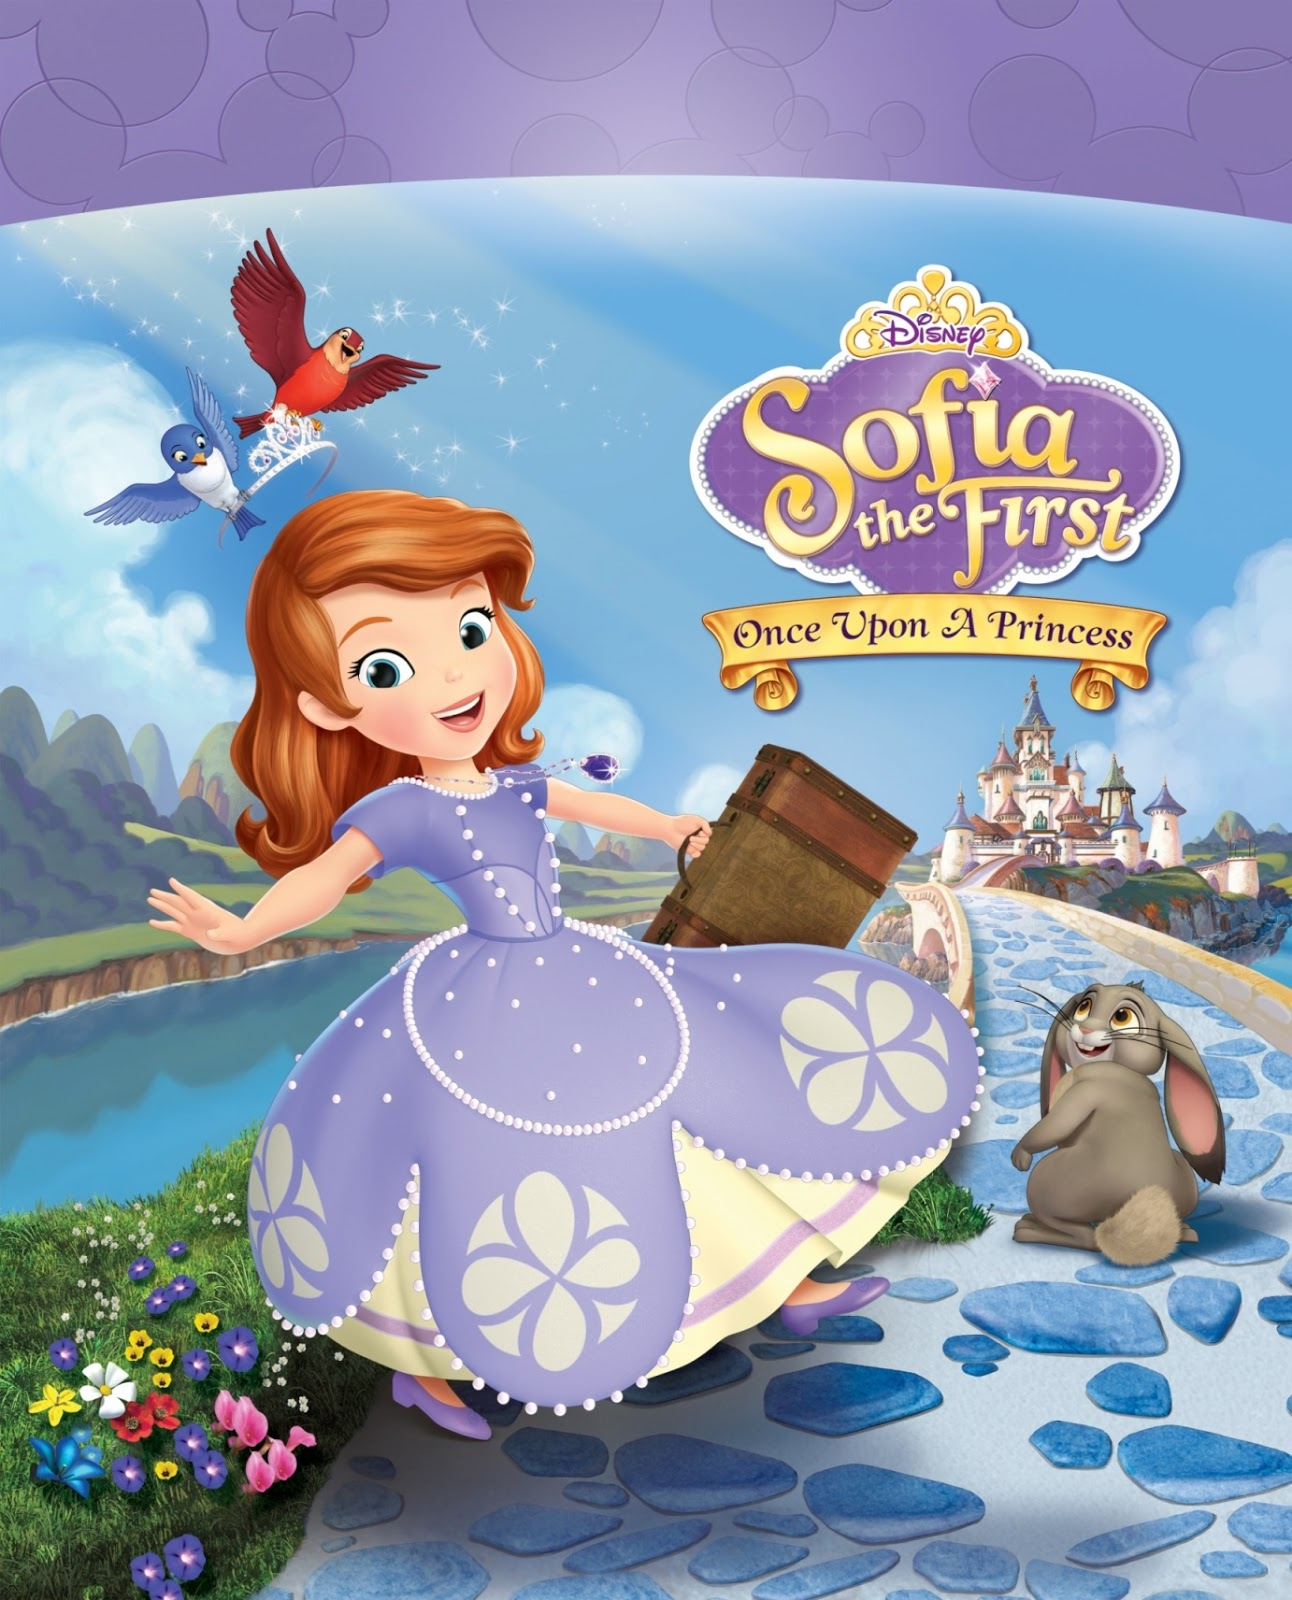 Sofia The First Once Upon A Princess wallpapers